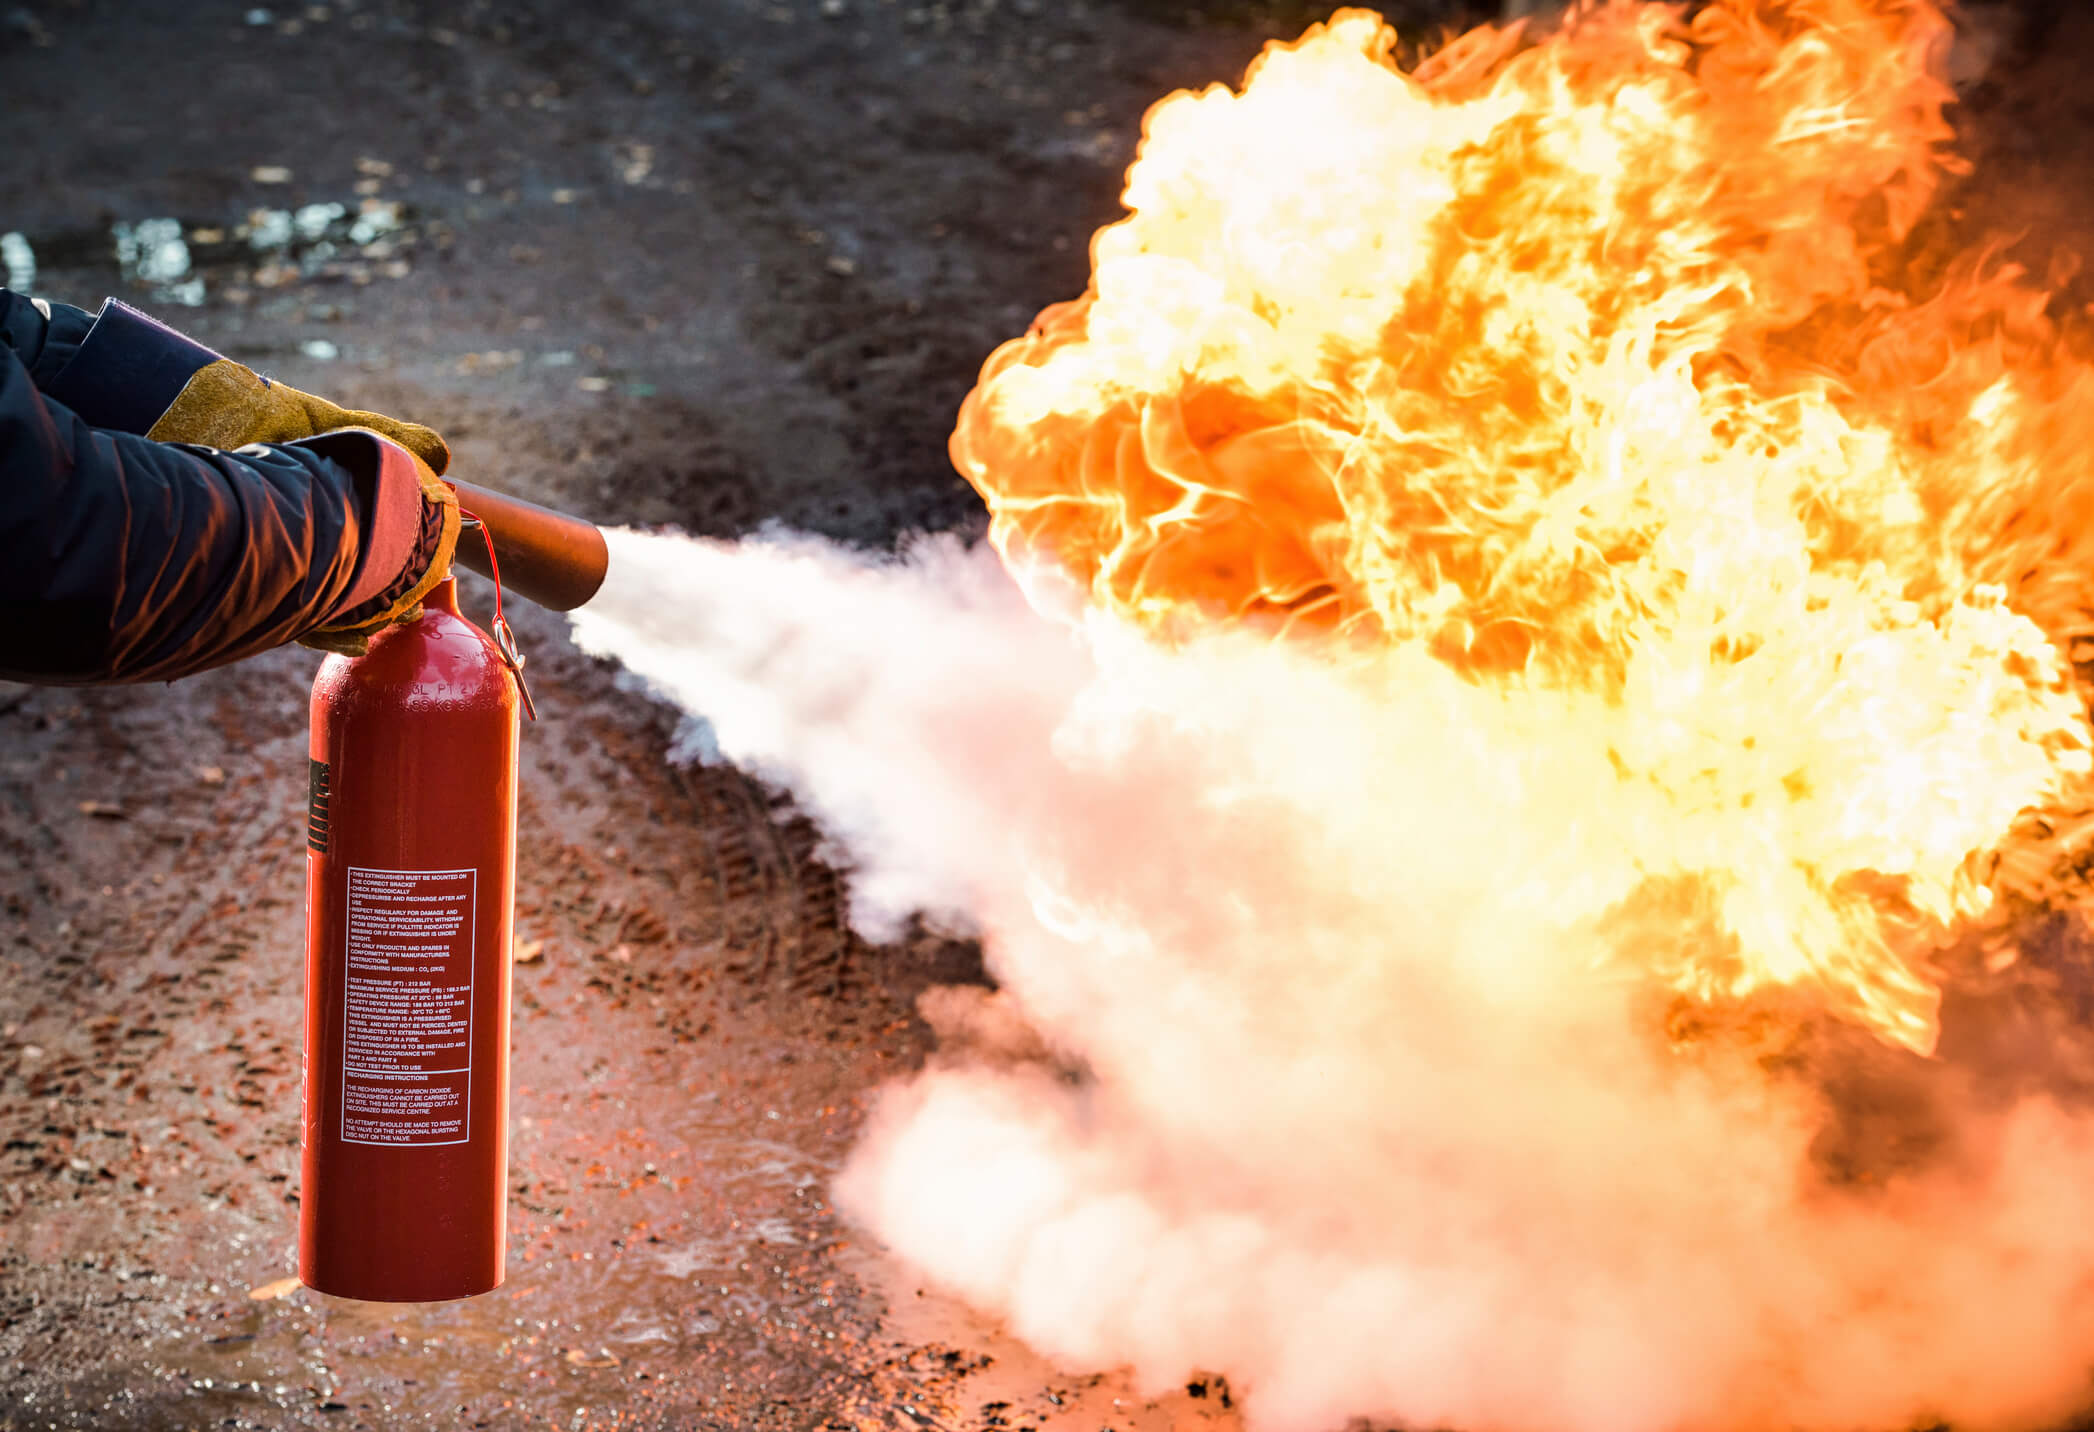 fire extinguisher putting out fire